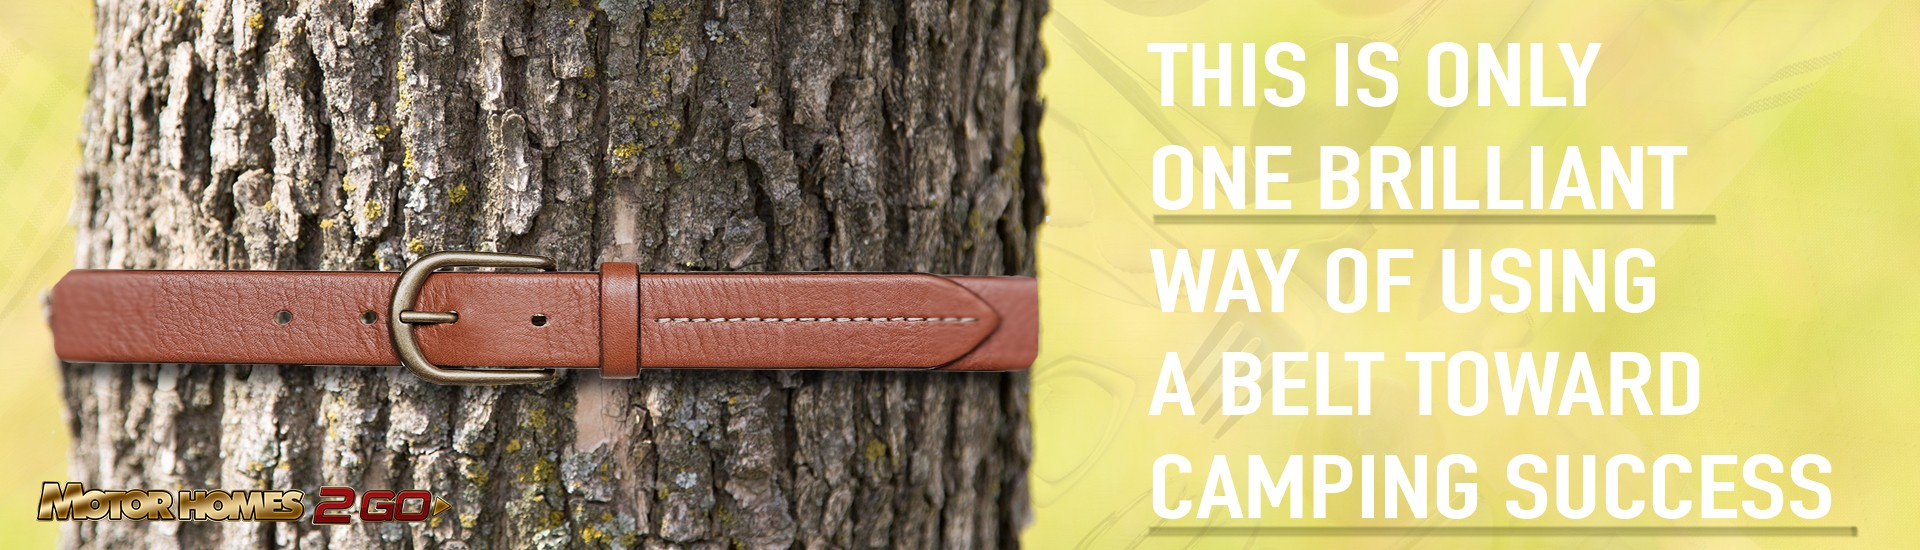 this is only one brilliant way of using a belt toward camping success